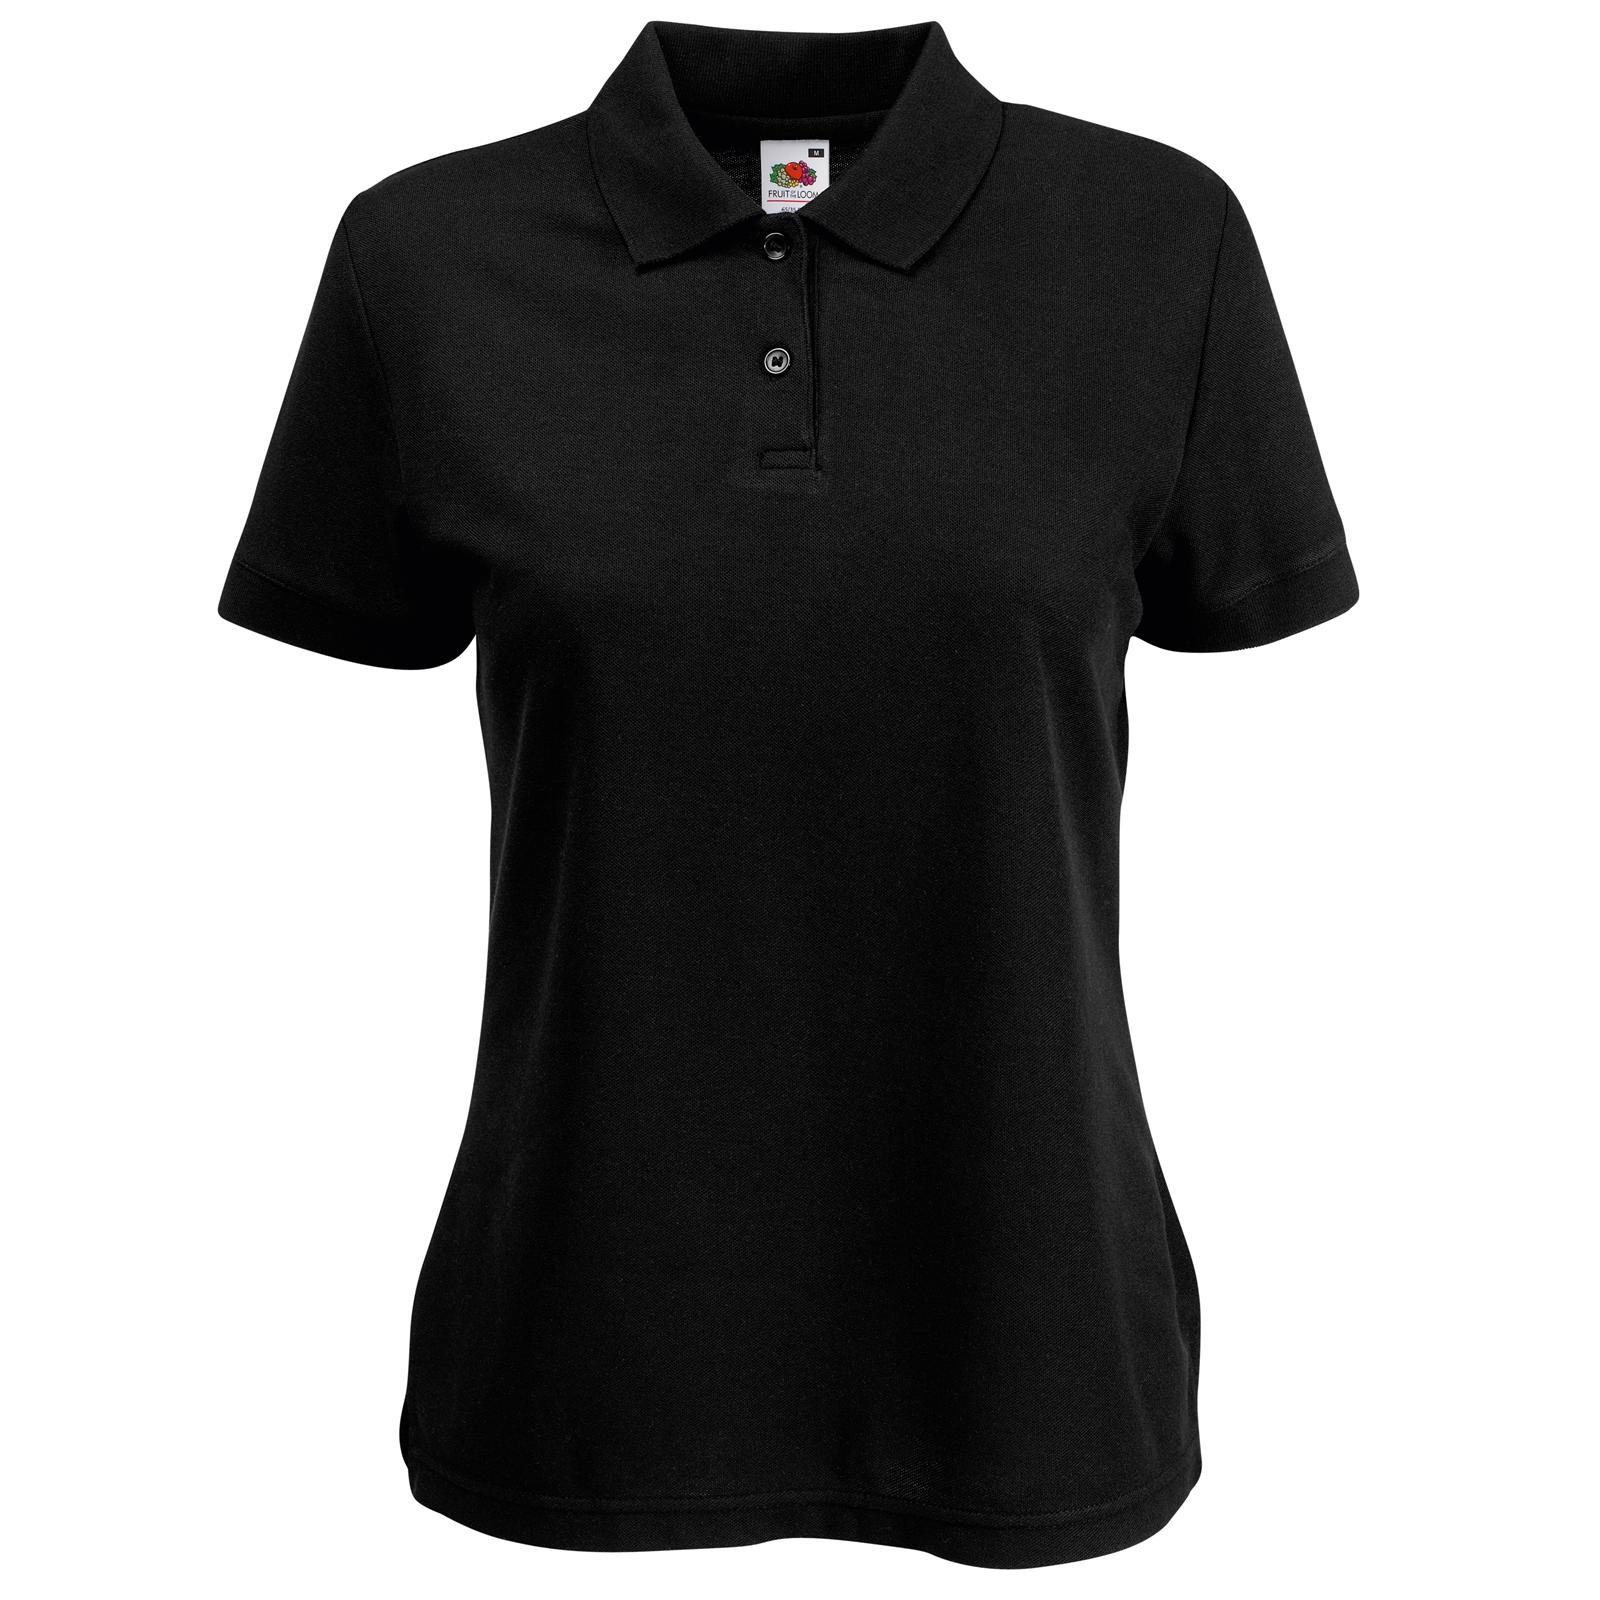 new fruit of the loom womens fitted polycotton polo shirt 10 colours xs xxl ebay. Black Bedroom Furniture Sets. Home Design Ideas